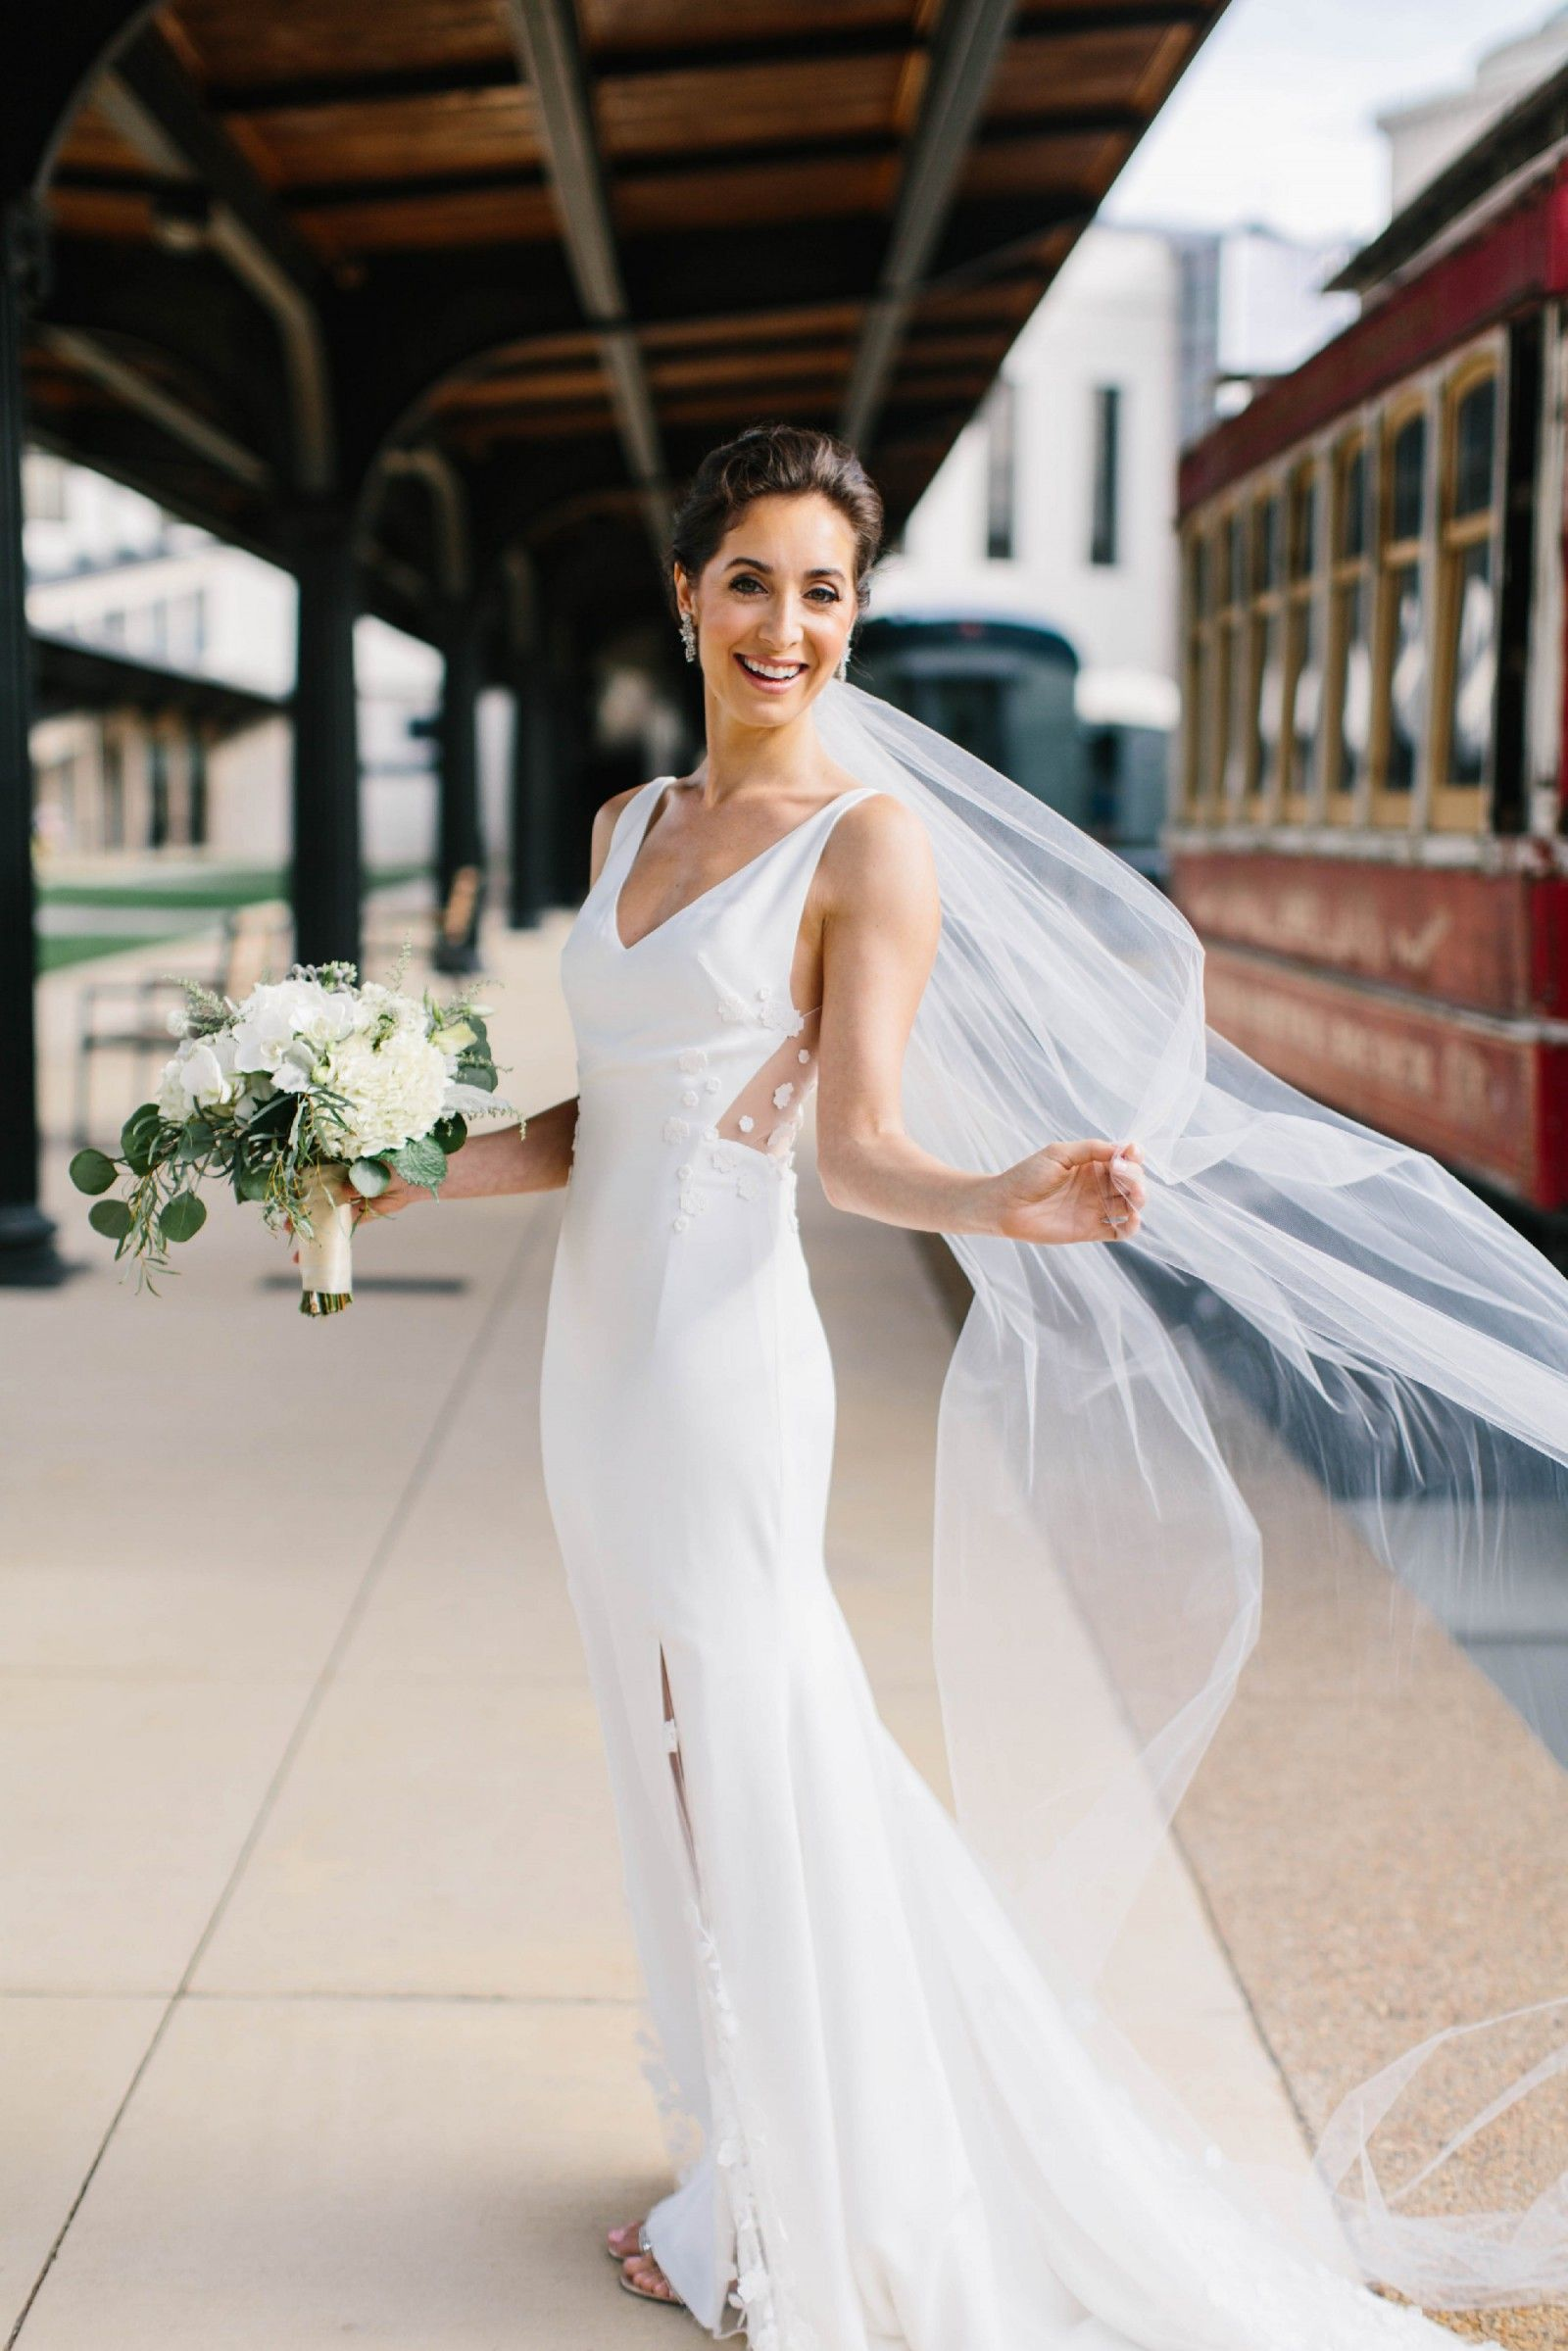 Rime Arodaky Aston Wedding Dress in 2020 Wedding dresses